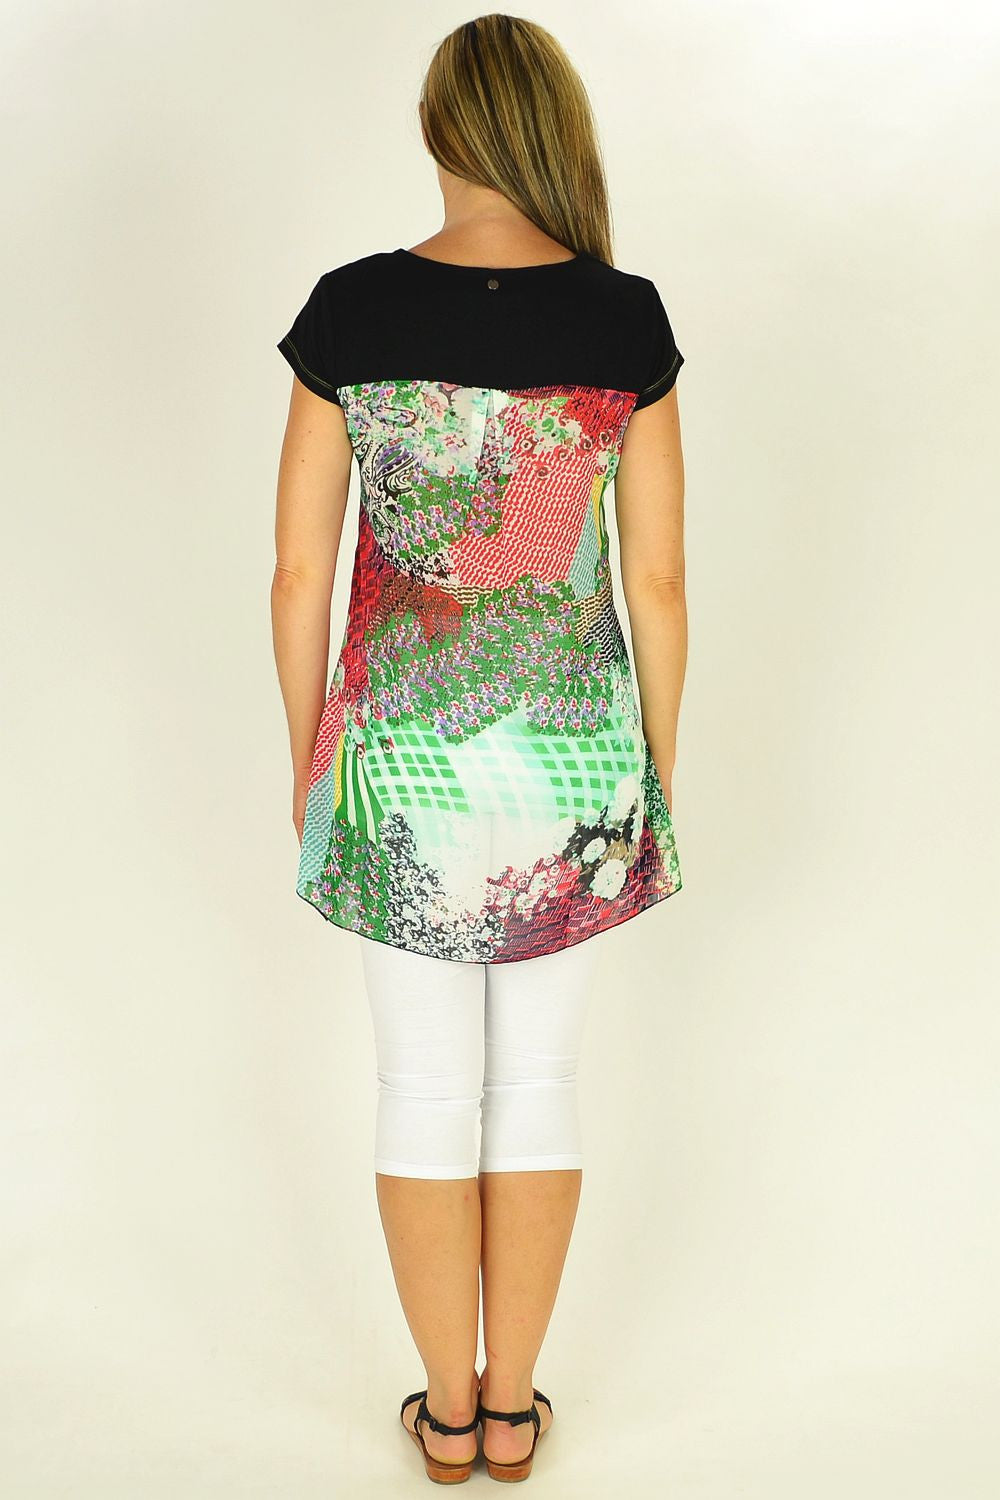 Colourful Clarity Shapes Tunic - at I Love Tunics @ www.ilovetunics.com = Number One! Tunics Destination